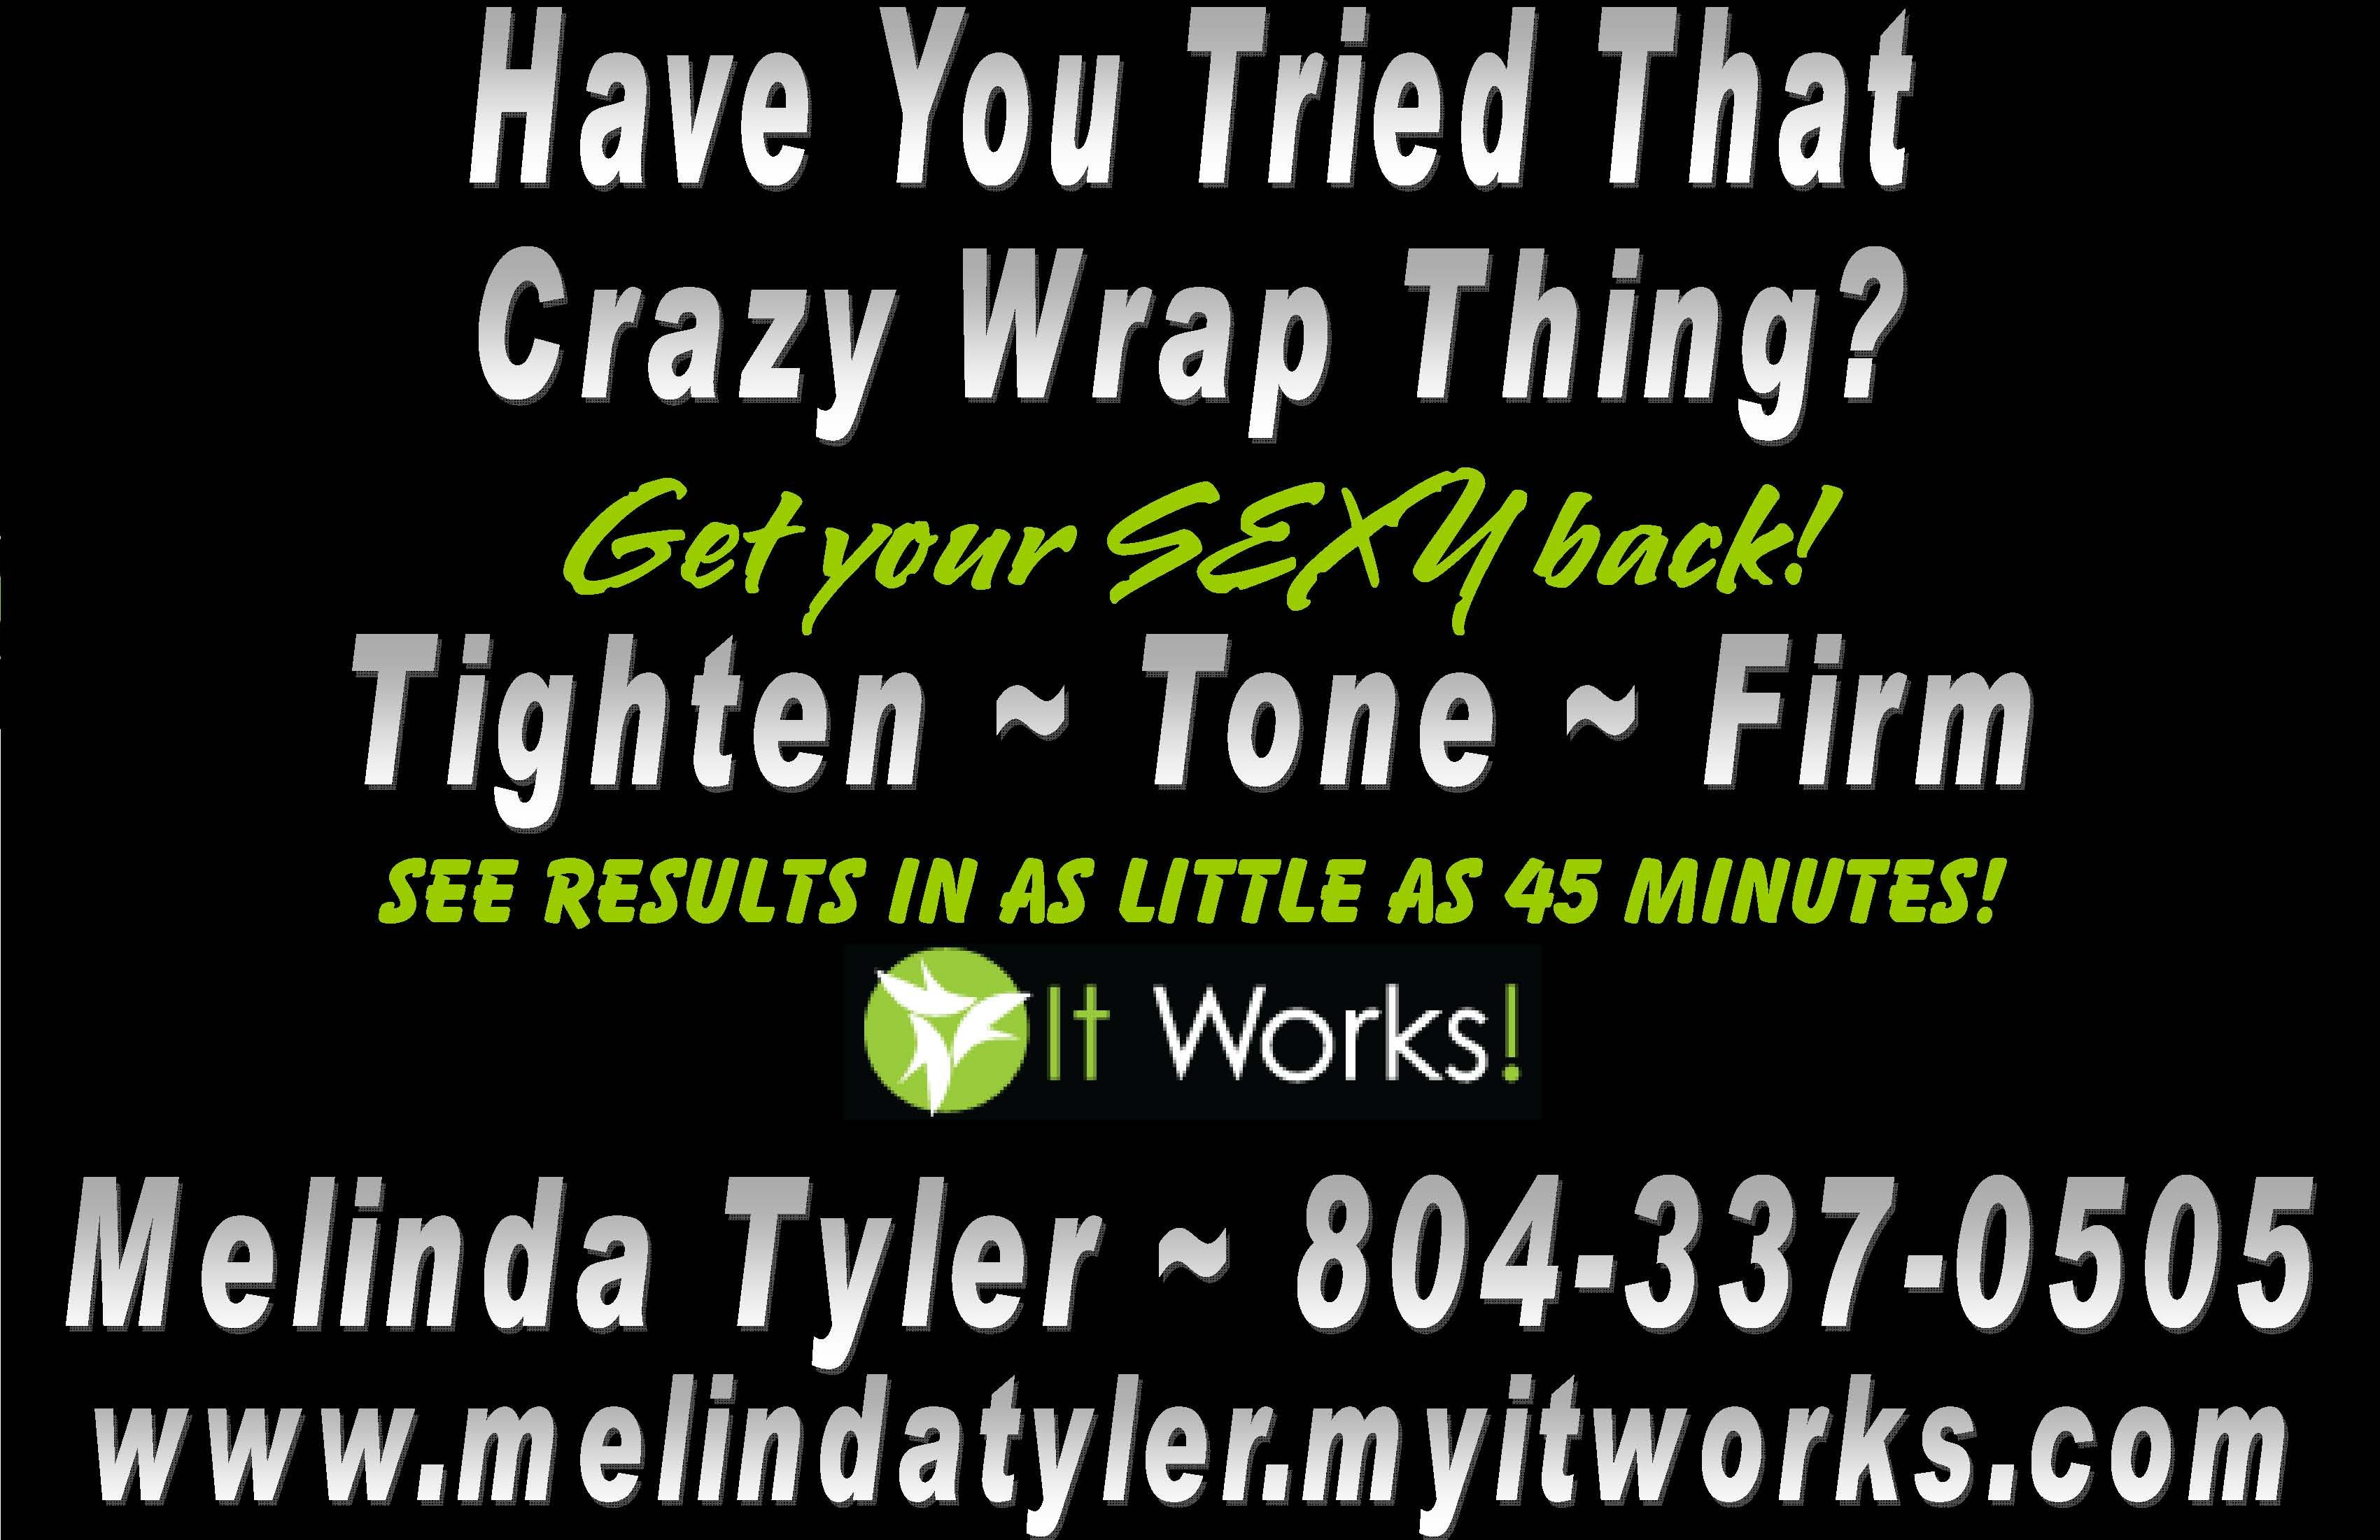 Have you tried that crazy wrap thing have you tried that crazy wra